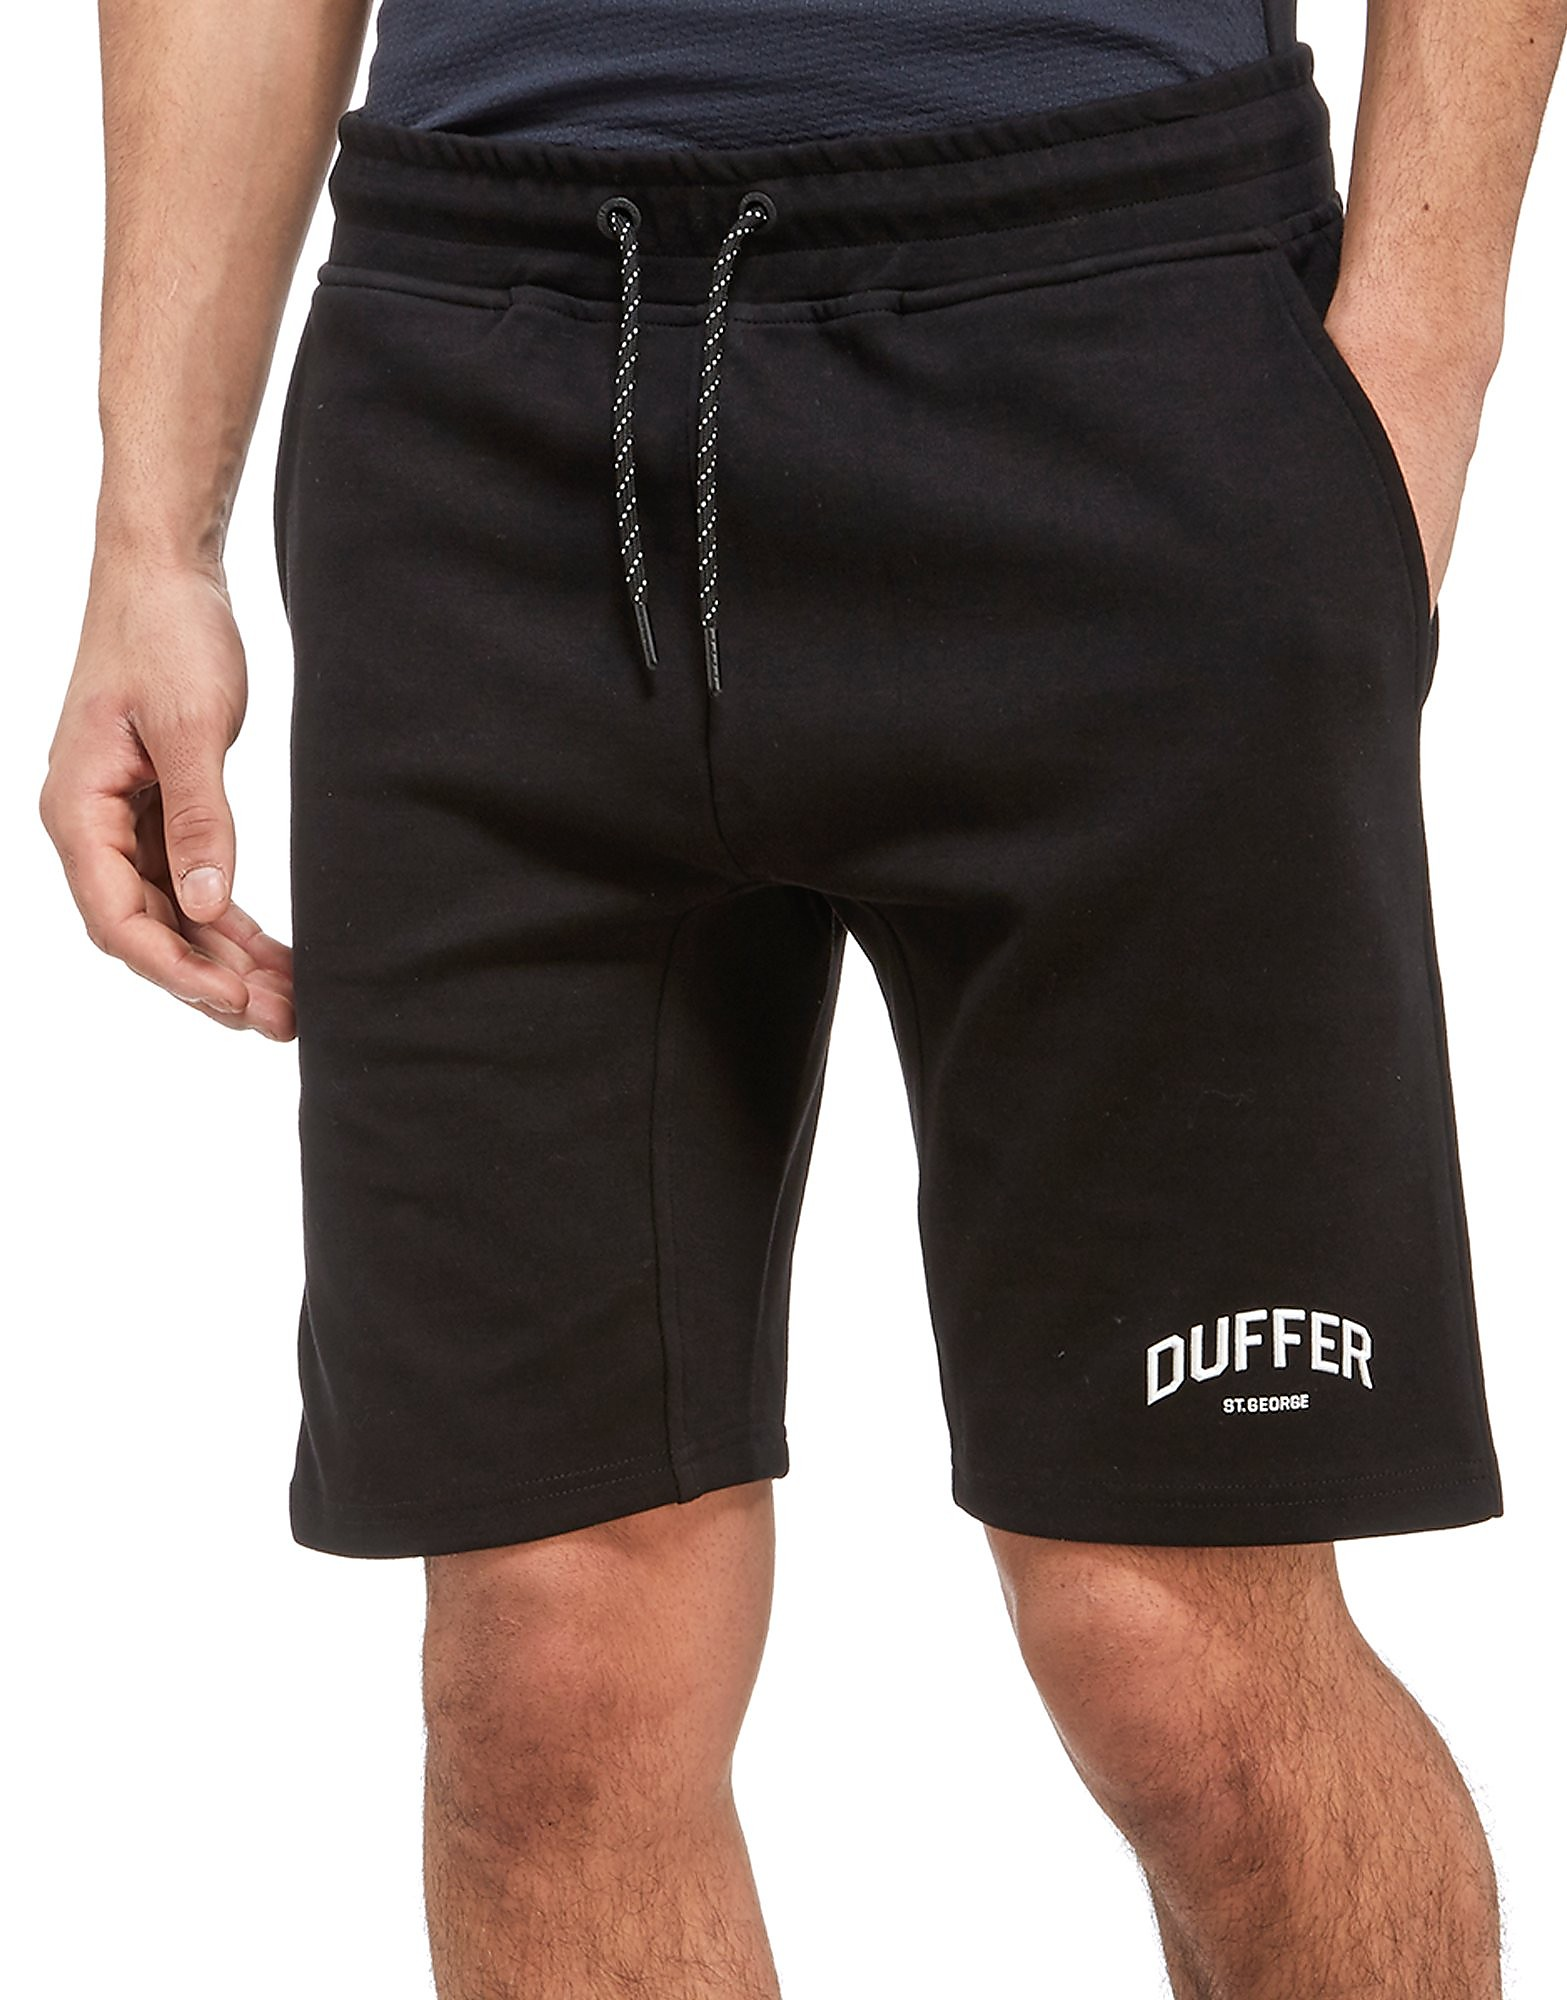 Duffer of St George Presence Shorts